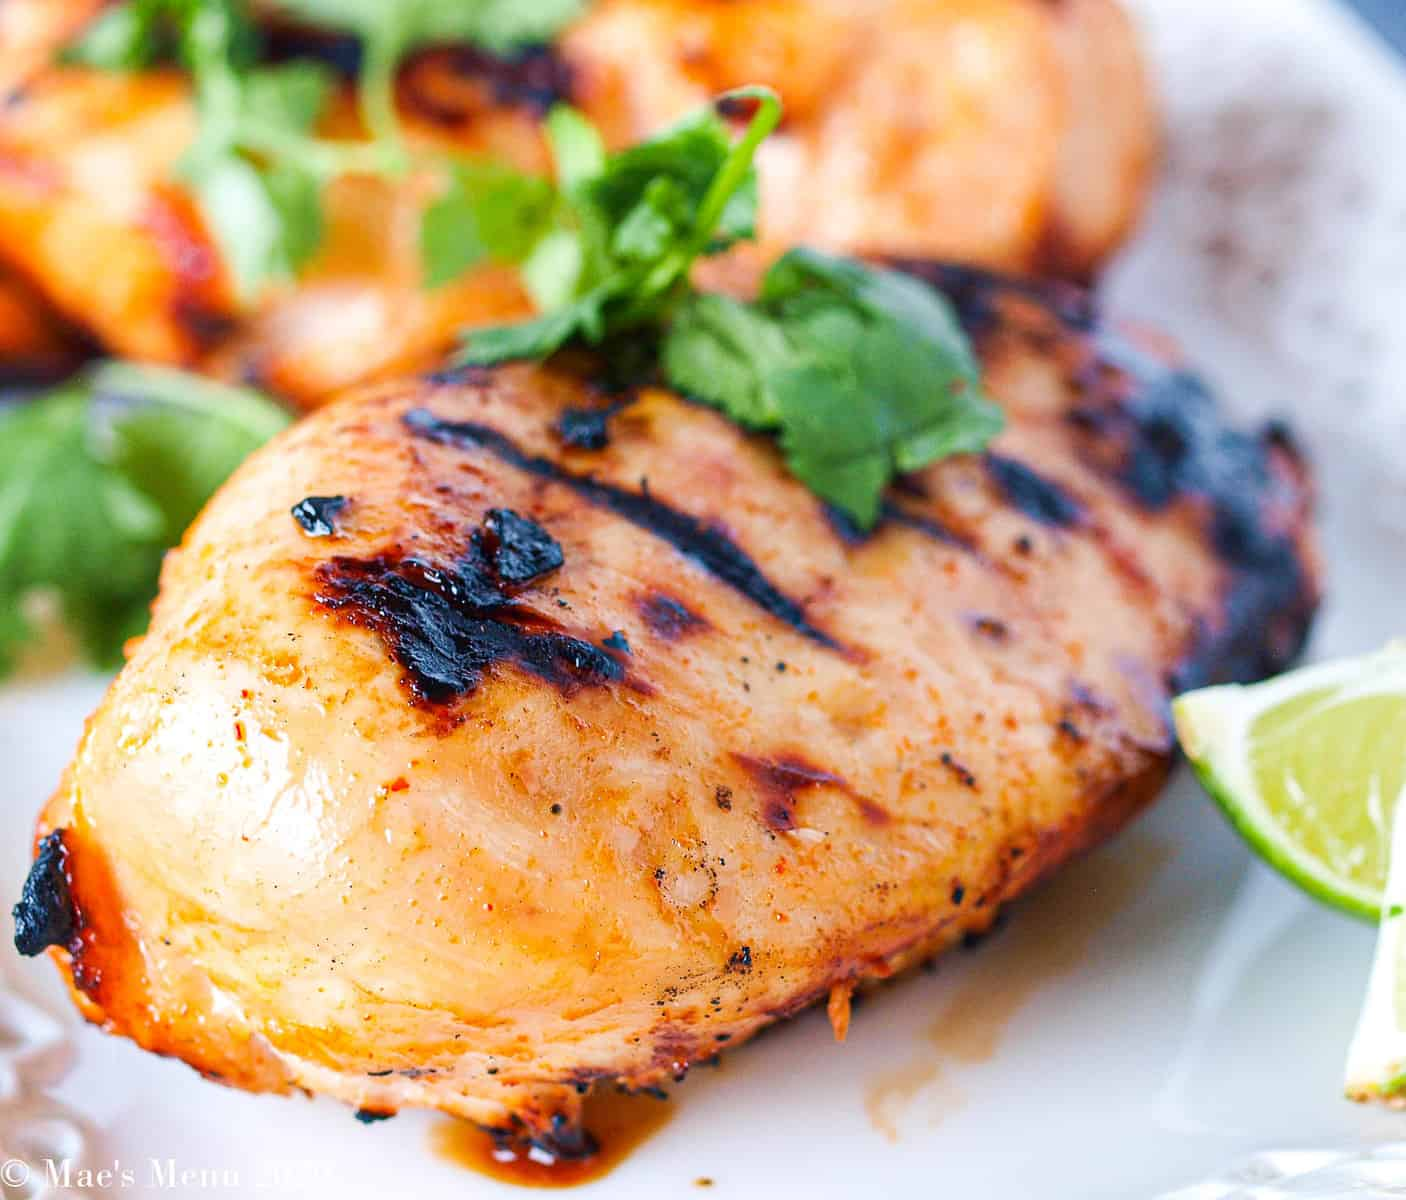 An up close shot of honey spicy grilled chicken without the sauce on it.